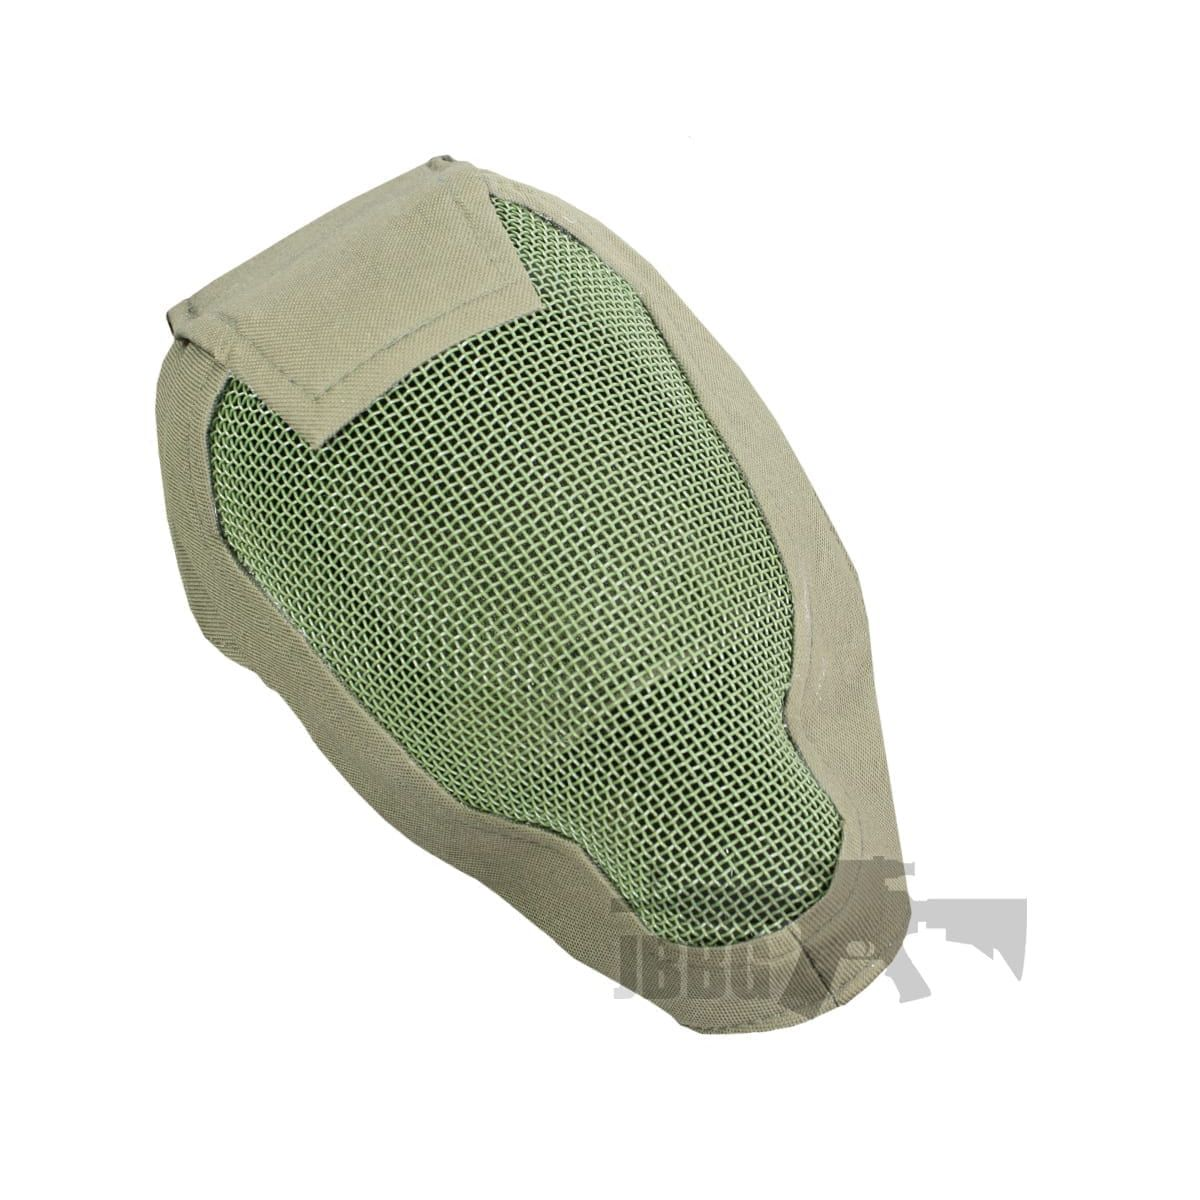 FULL FACE PROTECTION GREEN AIRSOFT PRO MESH SAFETY MASK FOR CLEAR VISION